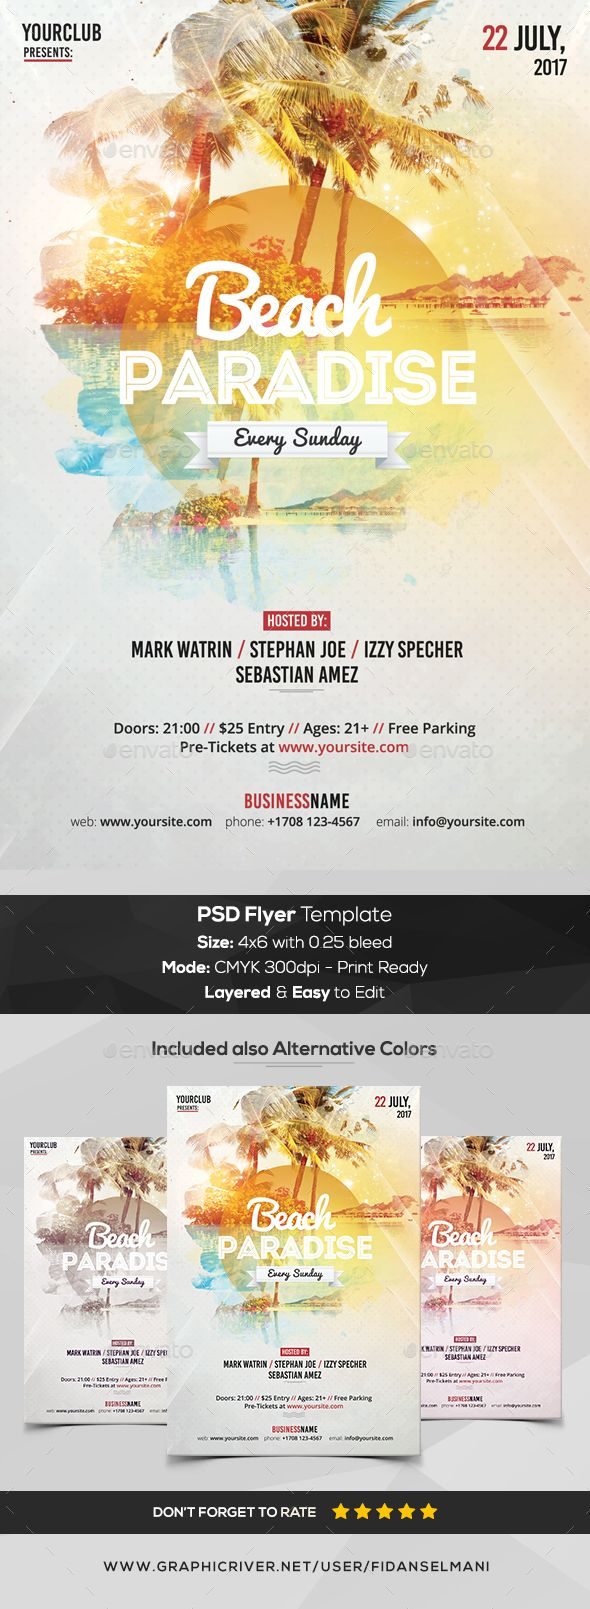 Beach Paradise - PSD #Flyer Template - Flyers Print Templates Download here:  https://graphicriver.net/item/beach-paradise-psd-flyer-template/20365316?ref=alena994